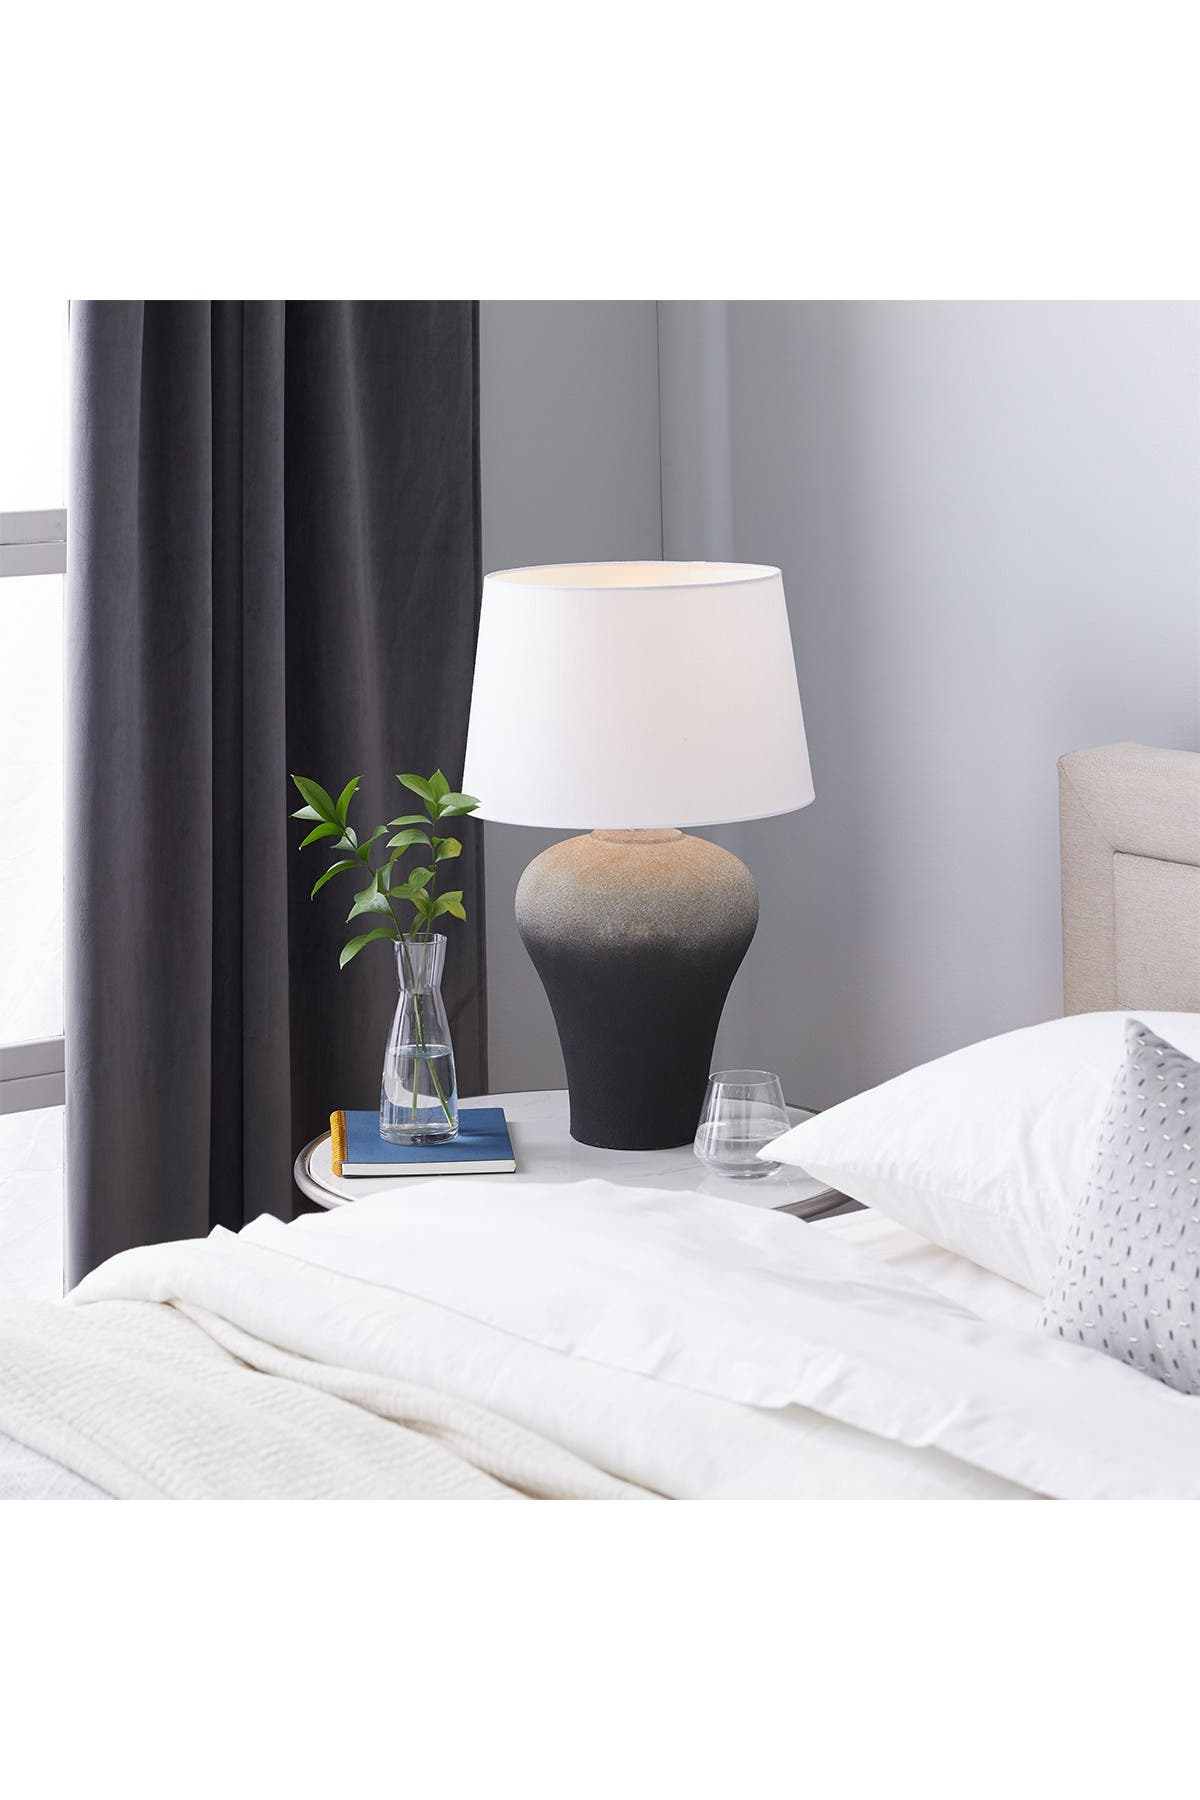 Willow Row Black Ombre Textured Ceramic Table Lamp With White Shade - 15\\\